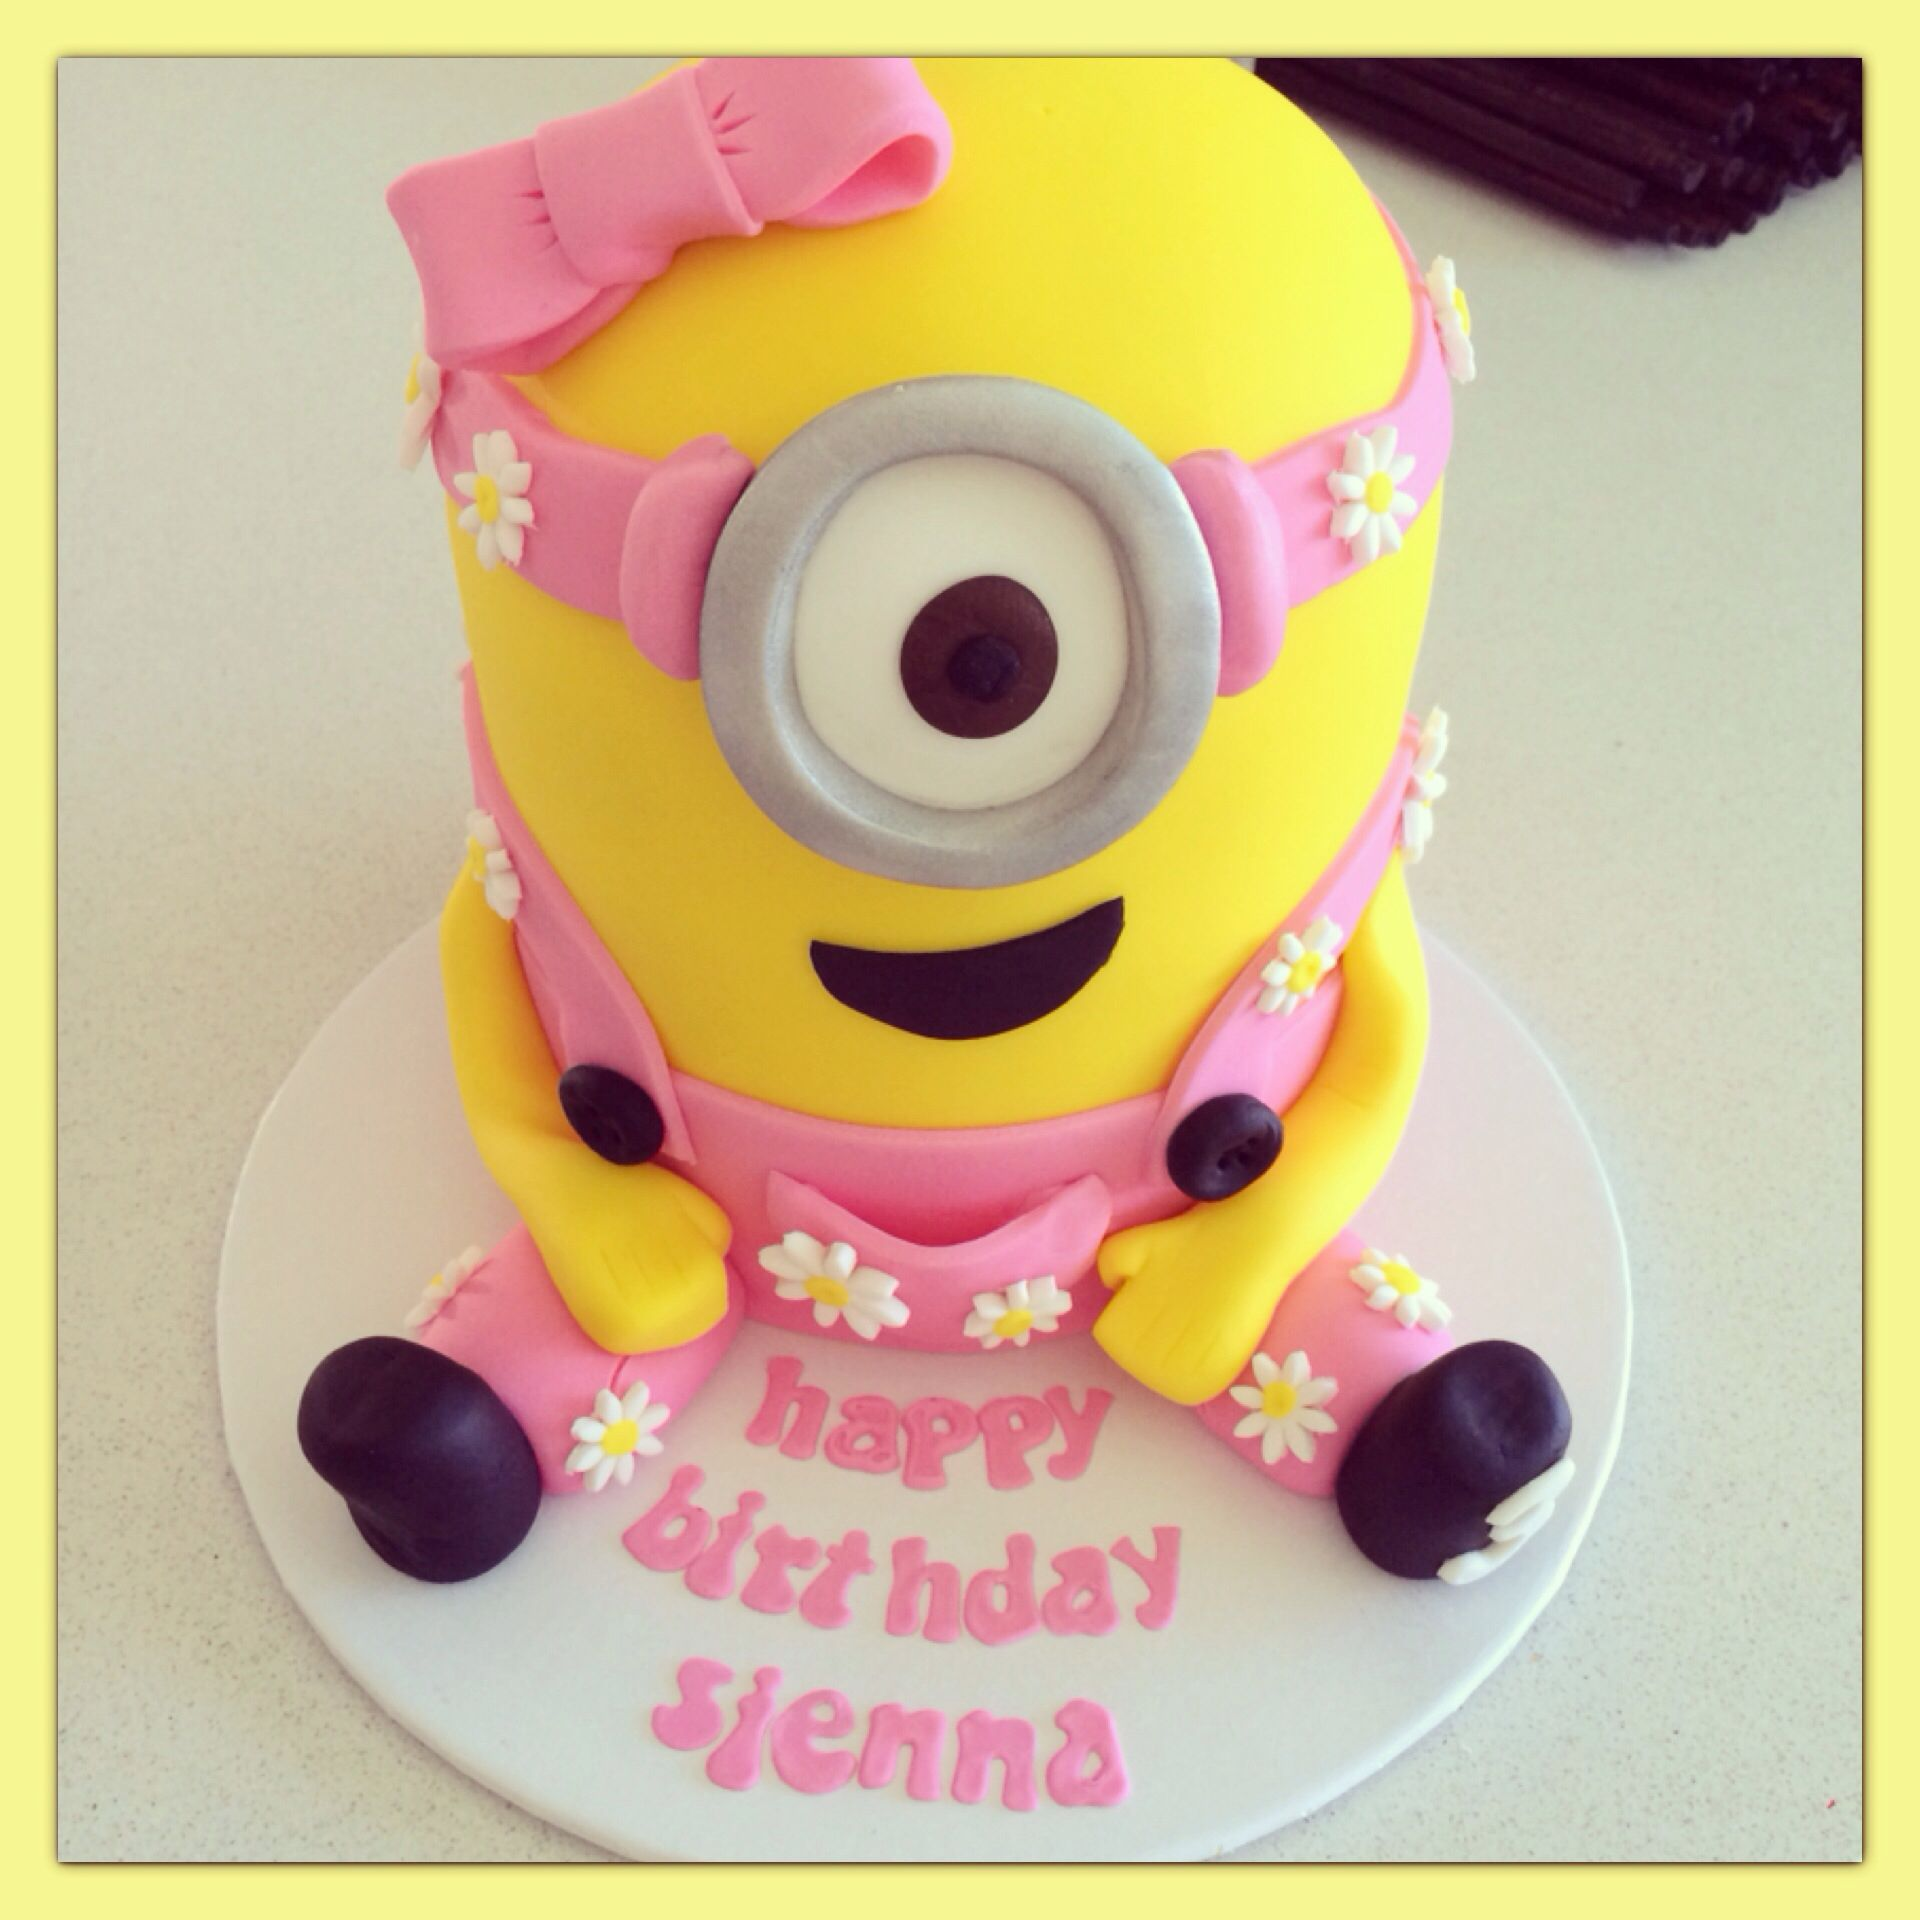 girl minion cake - Google Search Minion Pinterest ...